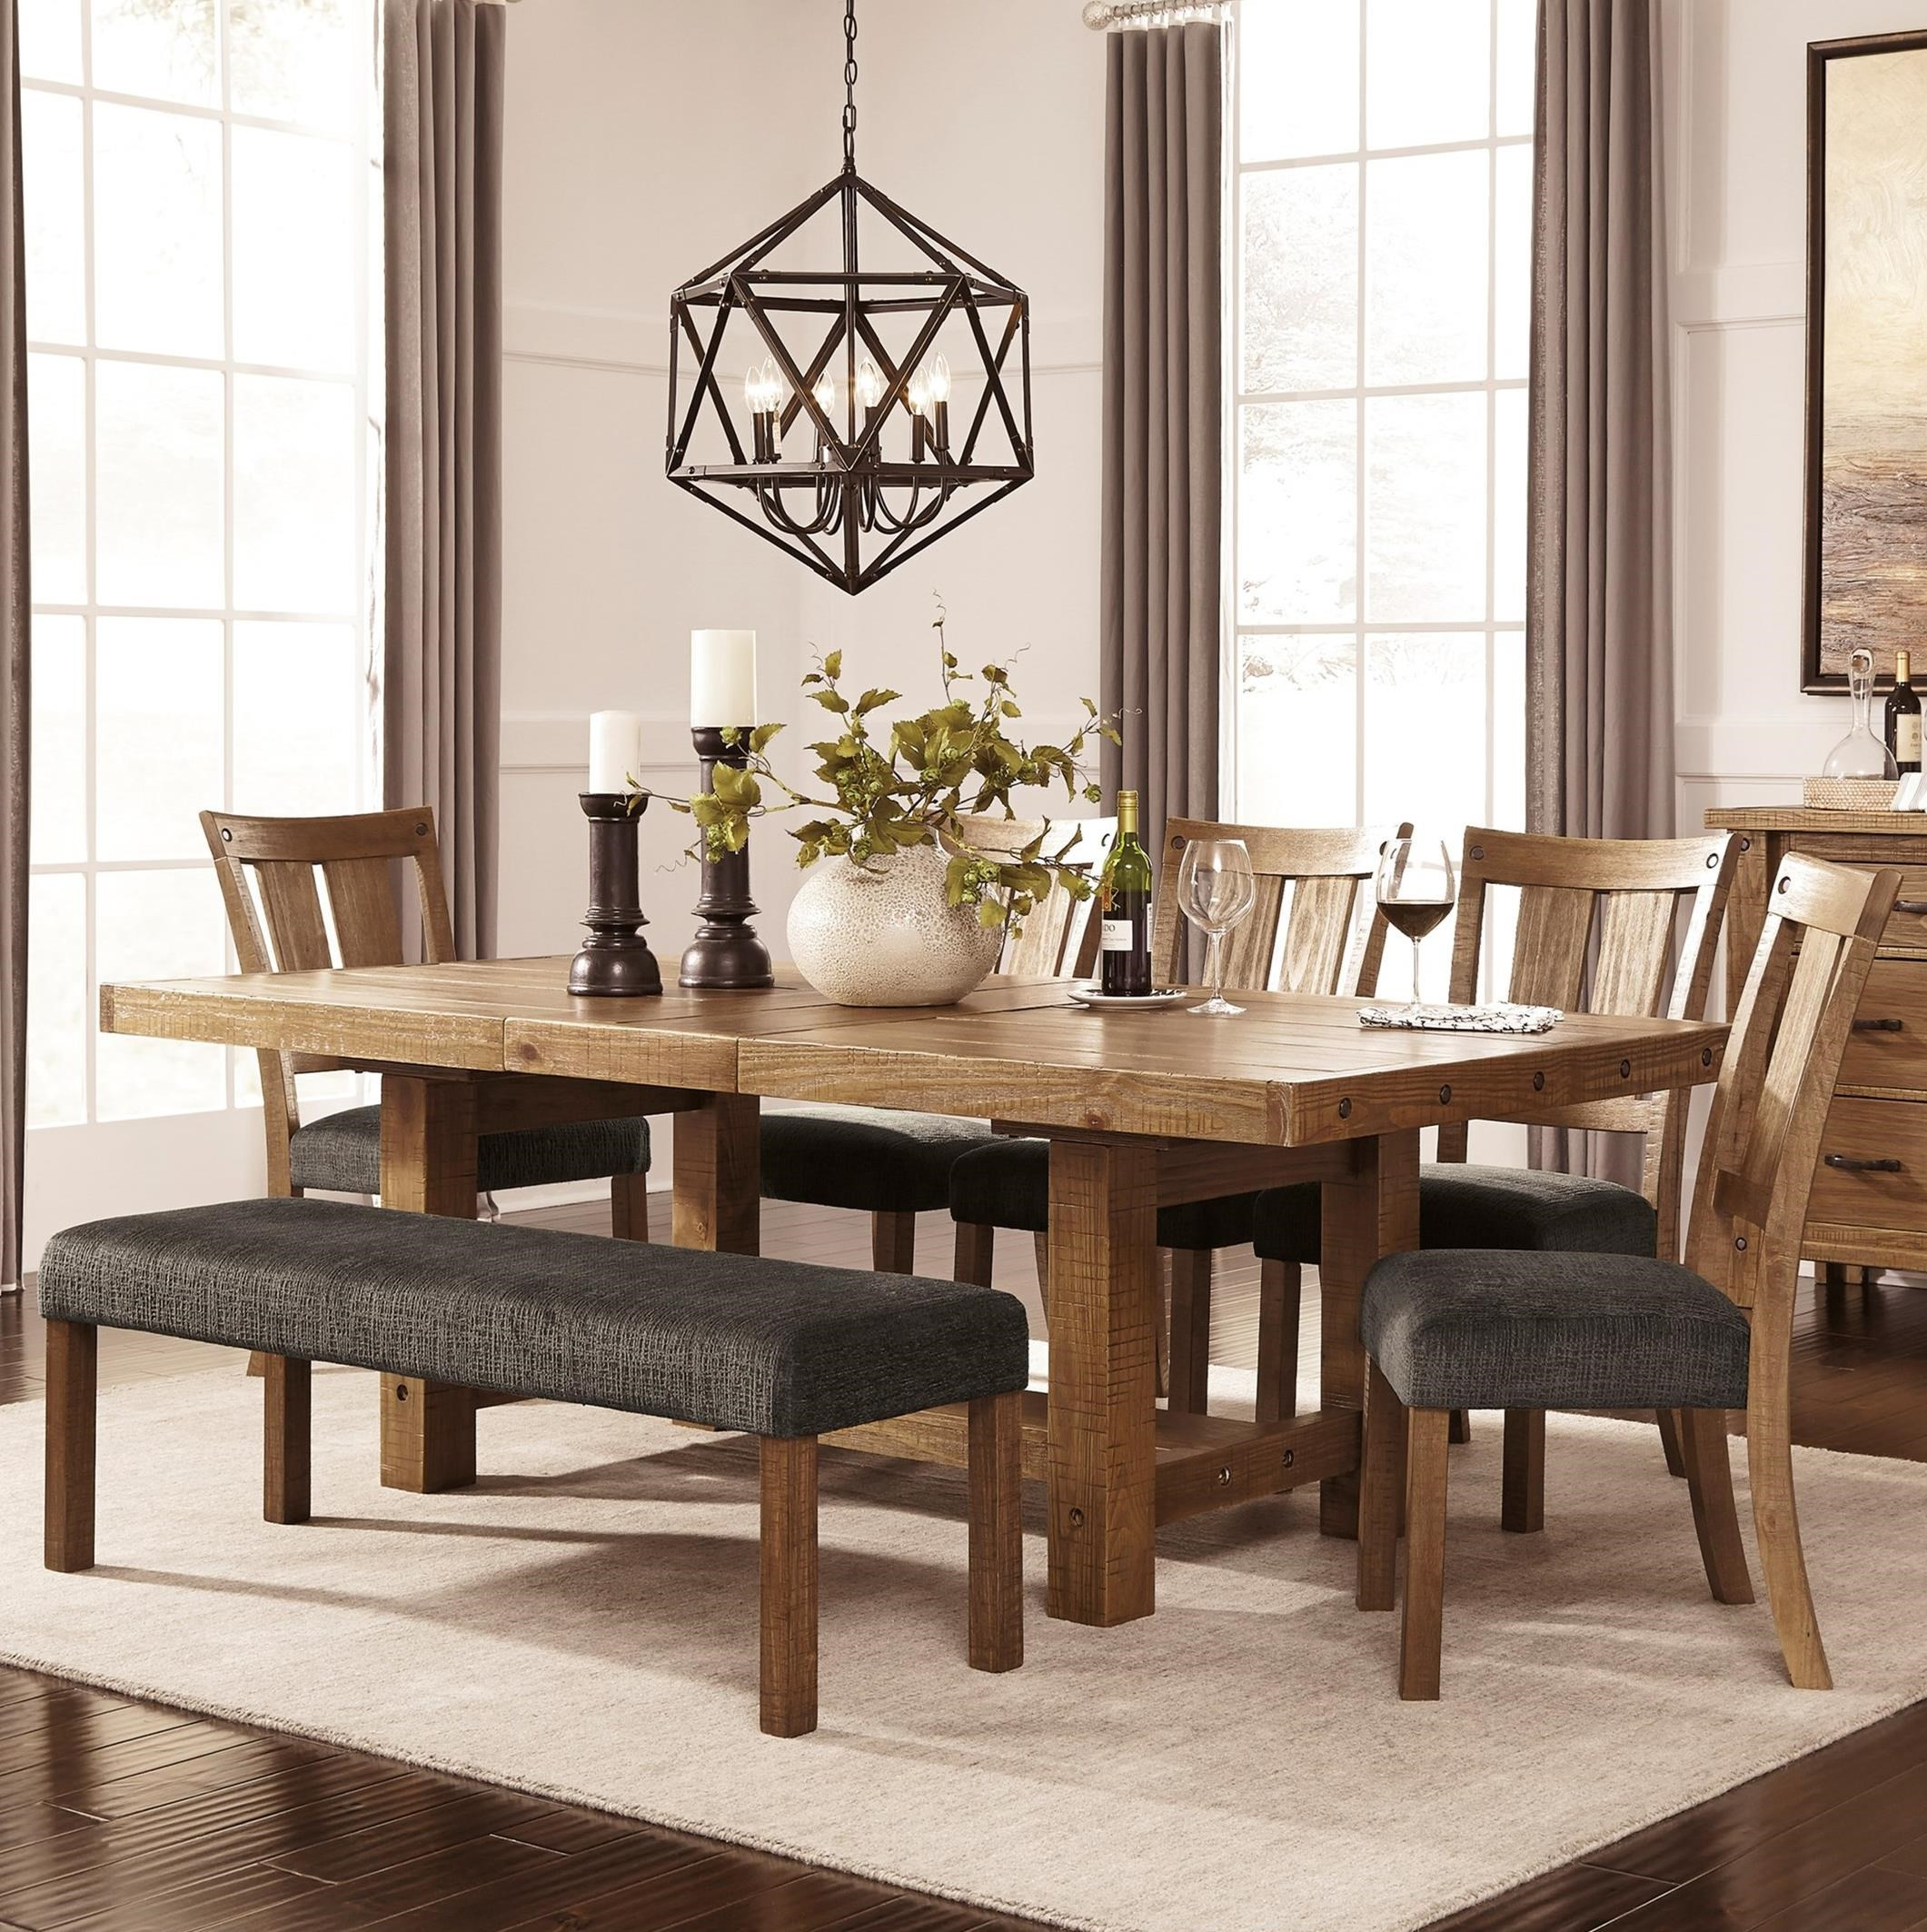 Dining Room Table And Bench Set: 7 Piece Table & Chair Set With Bench By Signature Design